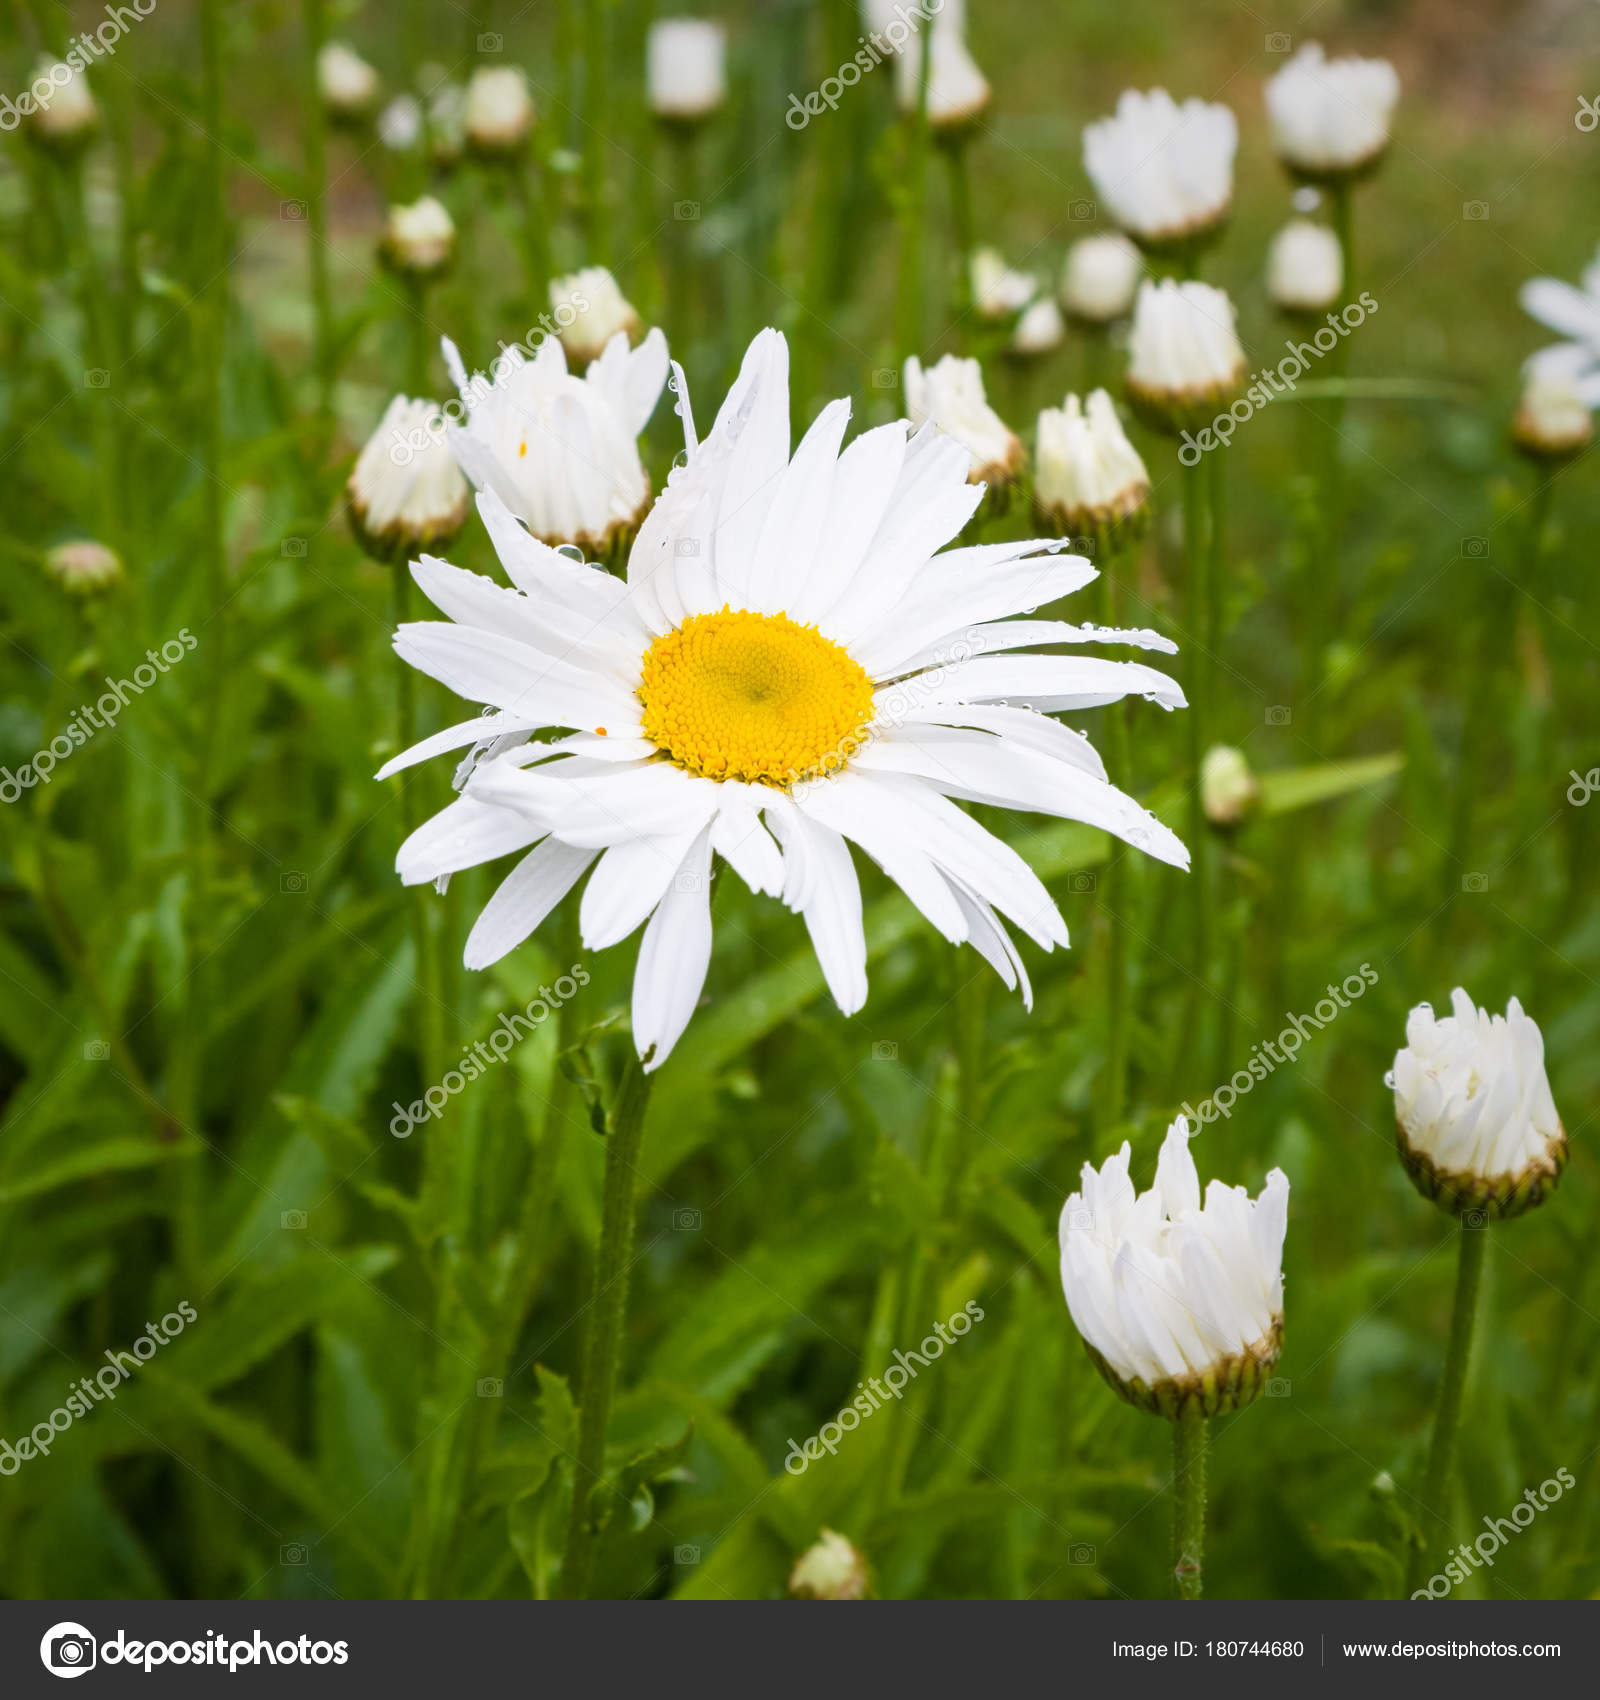 Daisy flower on meadow on coast of gouffre gulf stock photo daisy flower on meadow on coast of gouffre gulf stock photo izmirmasajfo